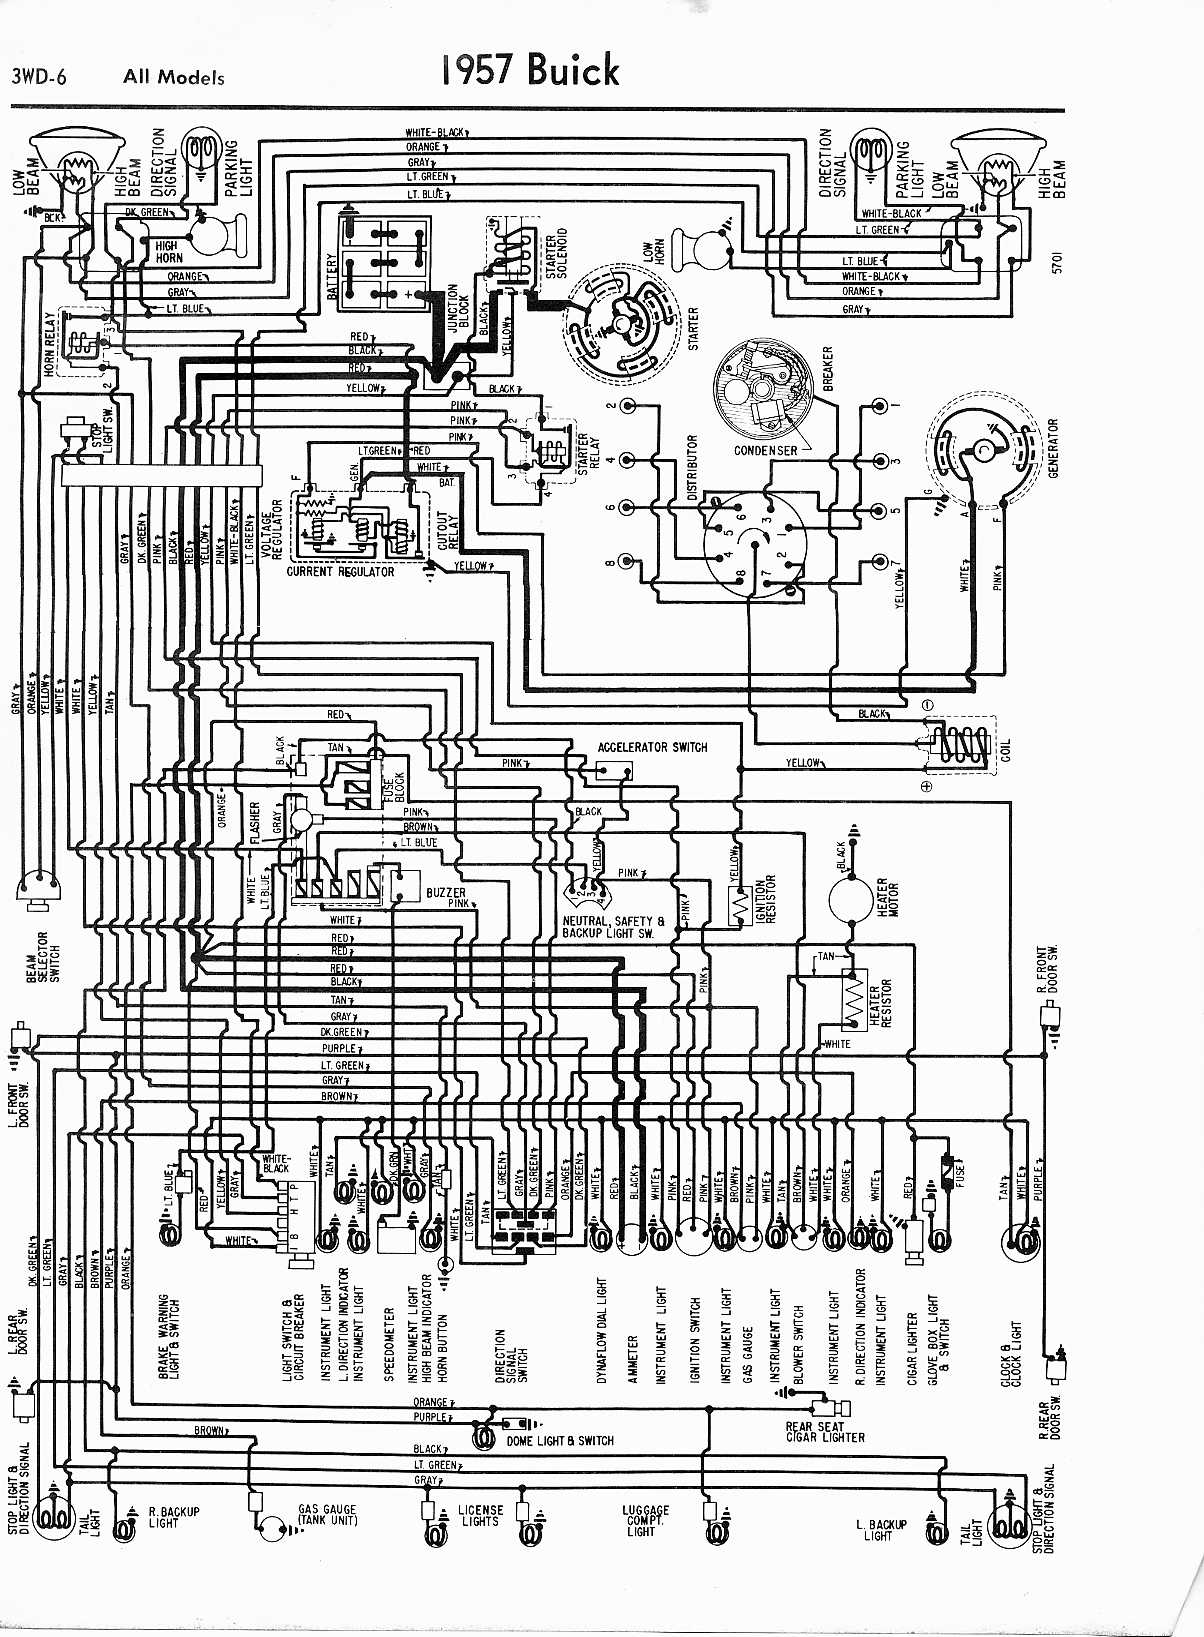 1957 ford ranch wagon wiring diagram wagon wiring diagrams | wiring library 1957 ford station wagon wiring schematic